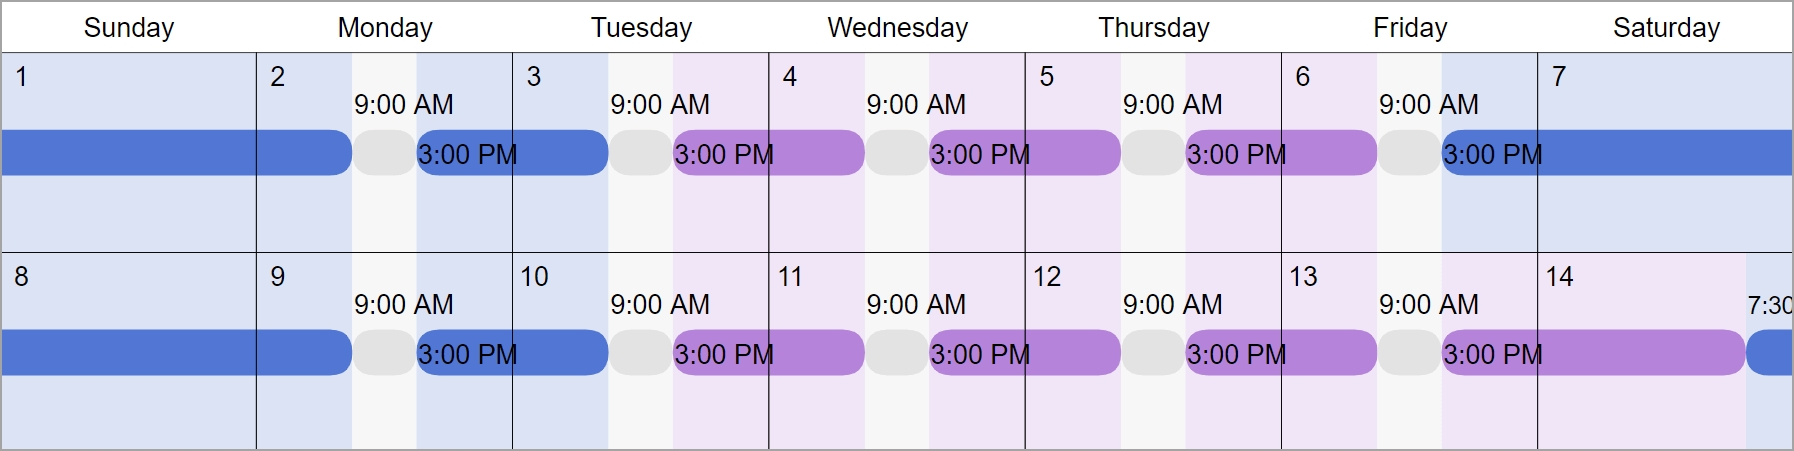 Catch Way Do You Think Monday Through Friday Is The Best School Schedule